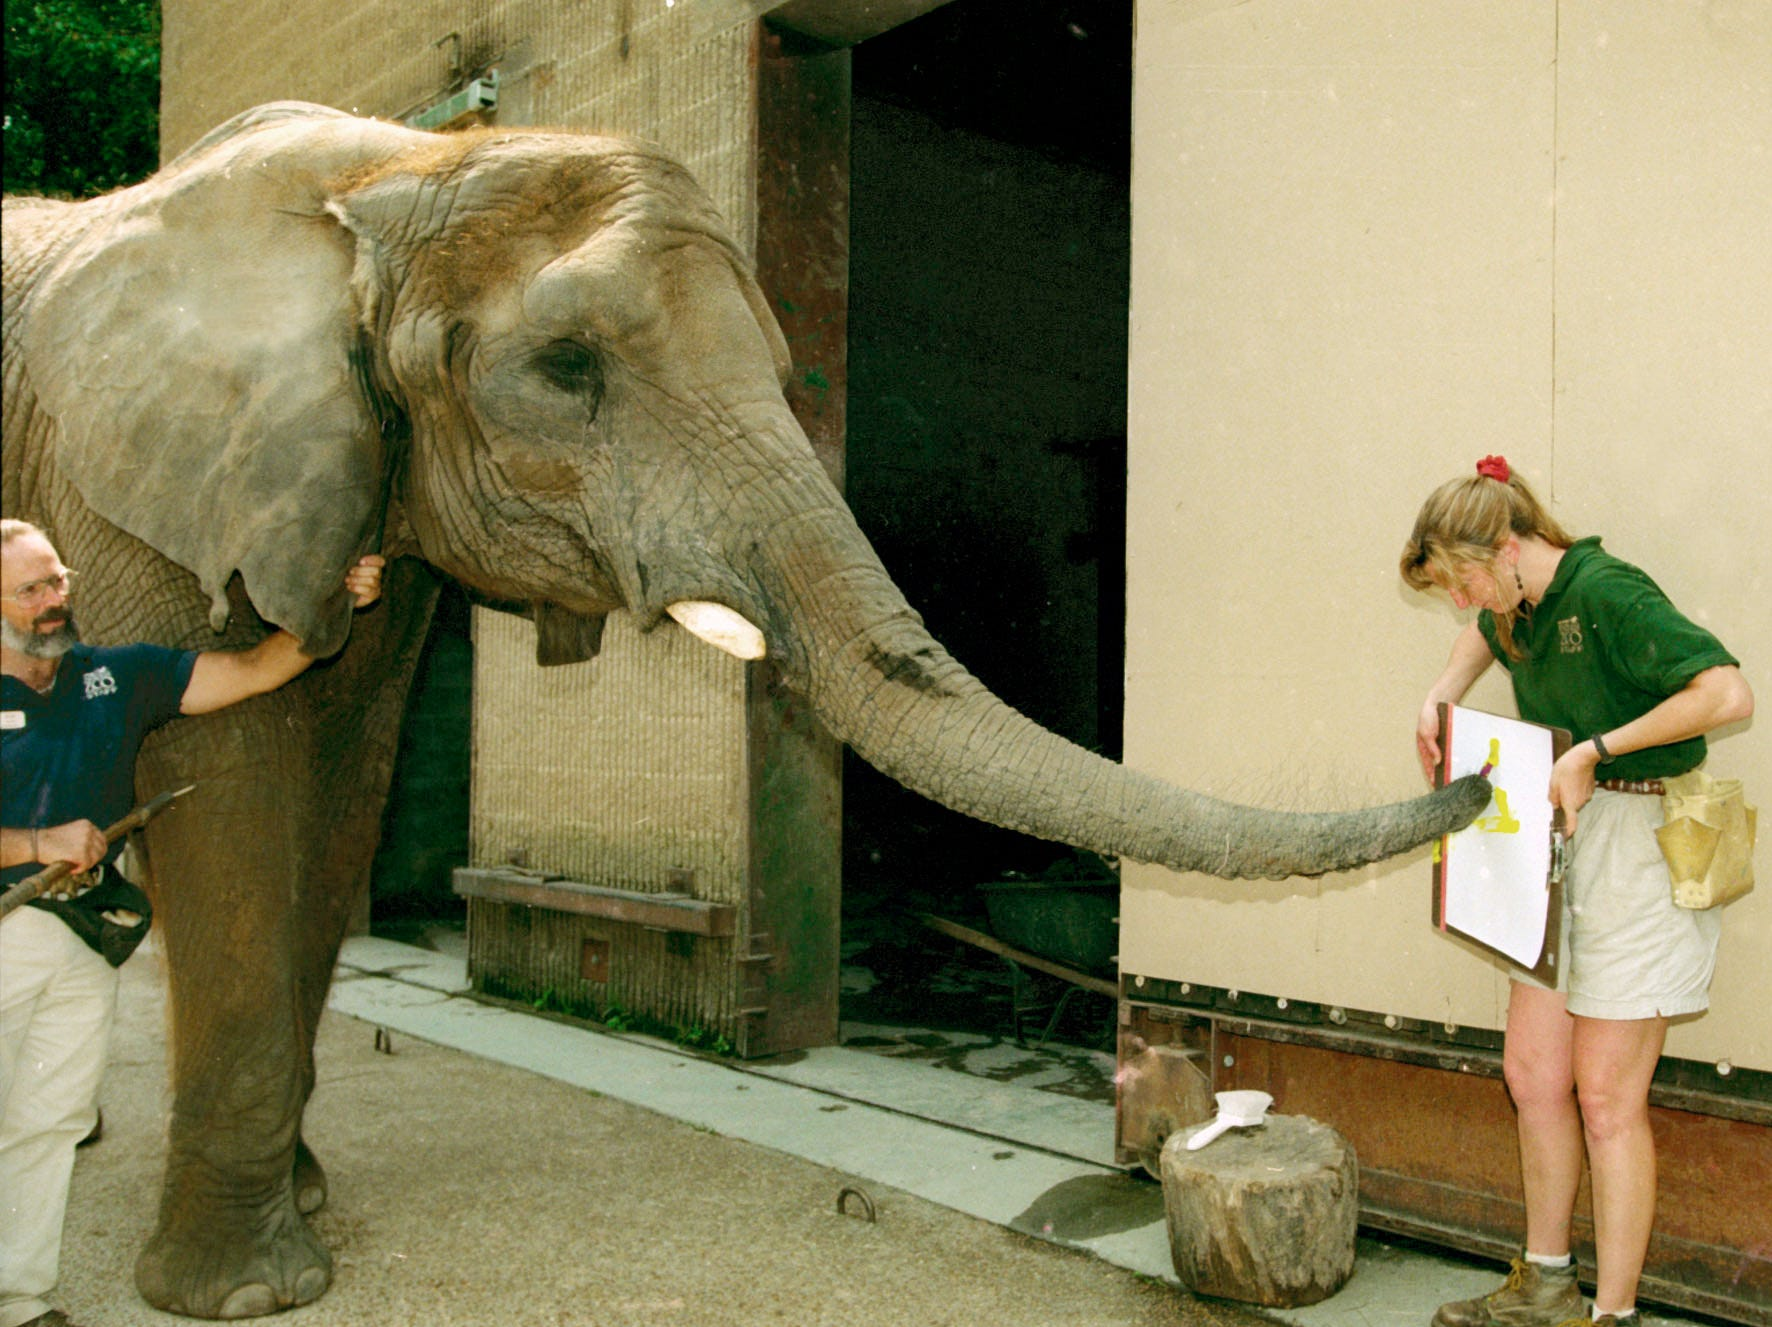 Keeper Deborah Anderson holds paper for elephant artist Mamie, a 36 year-old female pachaderm, at the Knoxville Zoo on August 15, 1997.  Mamie died 3/10/2006.